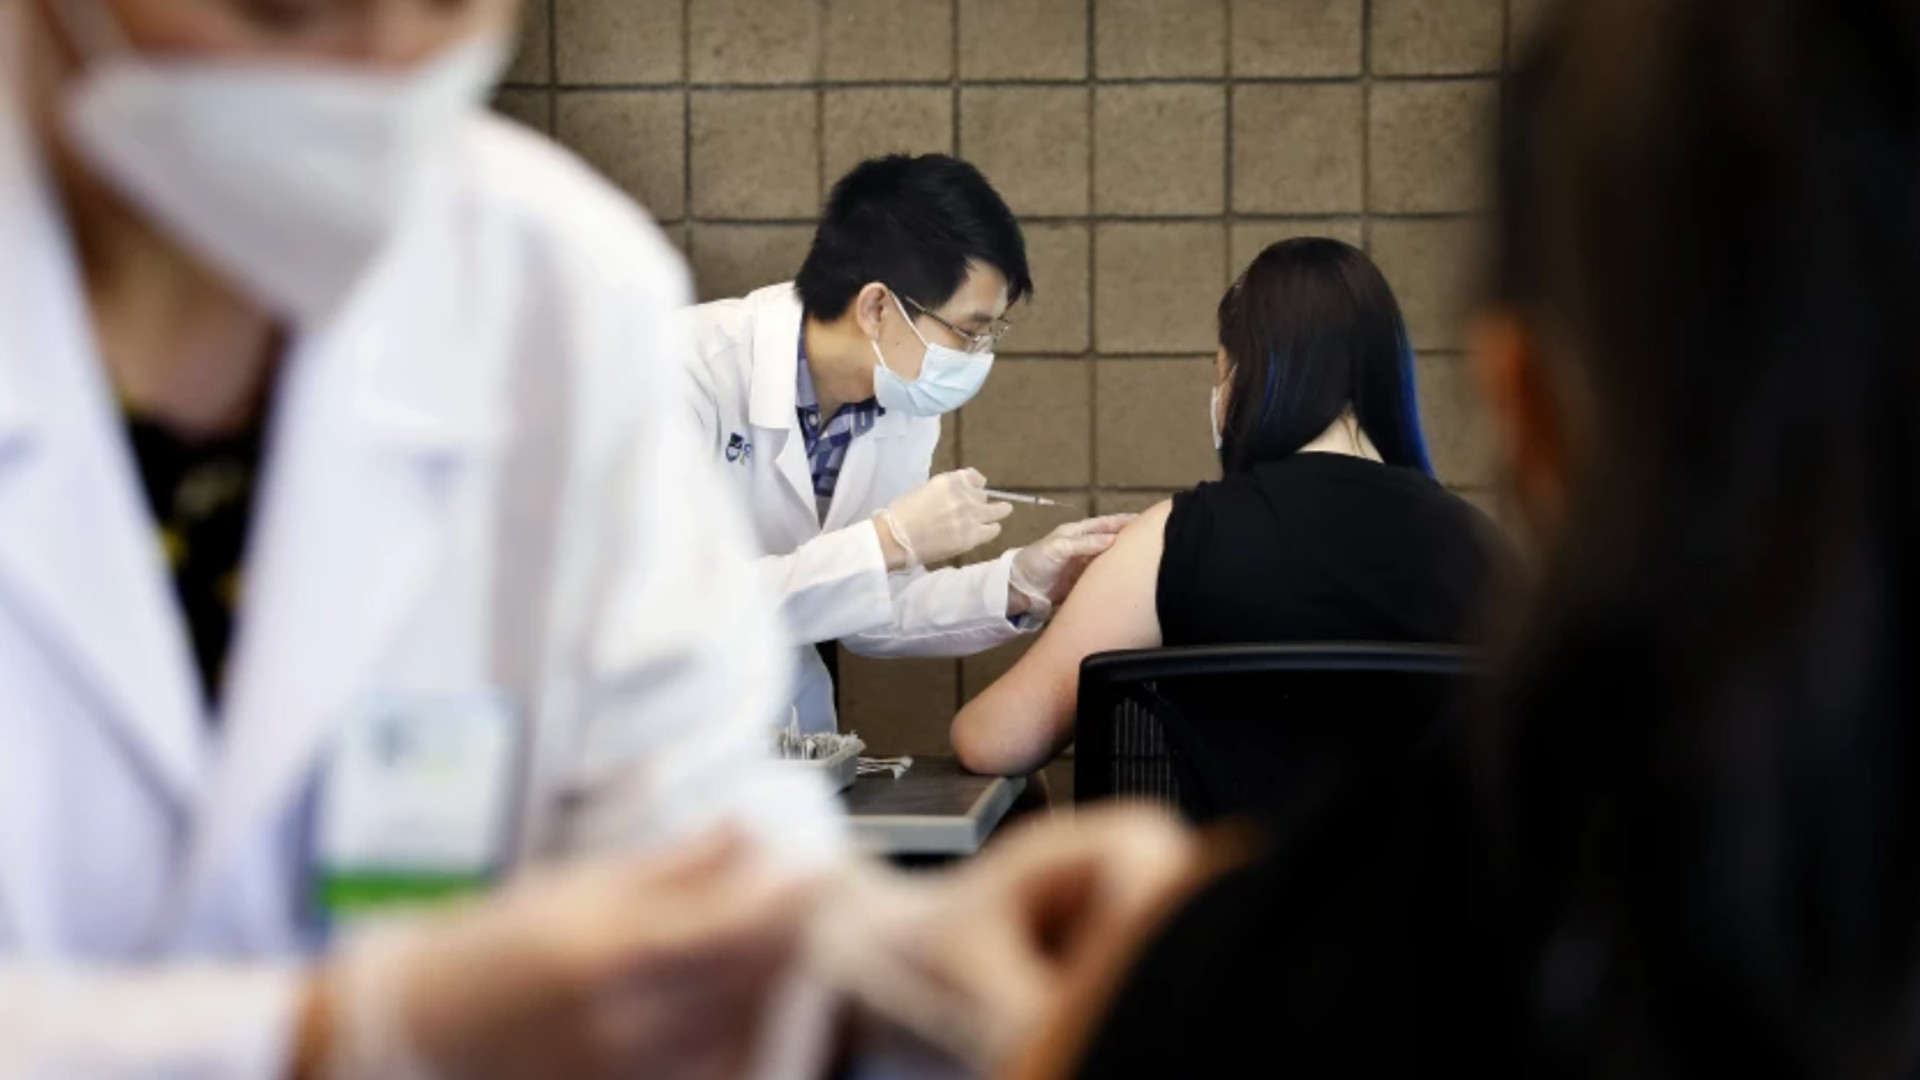 Sarith Mey, center, a pharmacist graduat intern with Rite Aid, administers a shot to CSUDH student Fritzi Bui, during a COVID-19 vaccination clinic hosted by Cal State Dominguez Hills in Carson.(Christina House/Los Angeles Times)